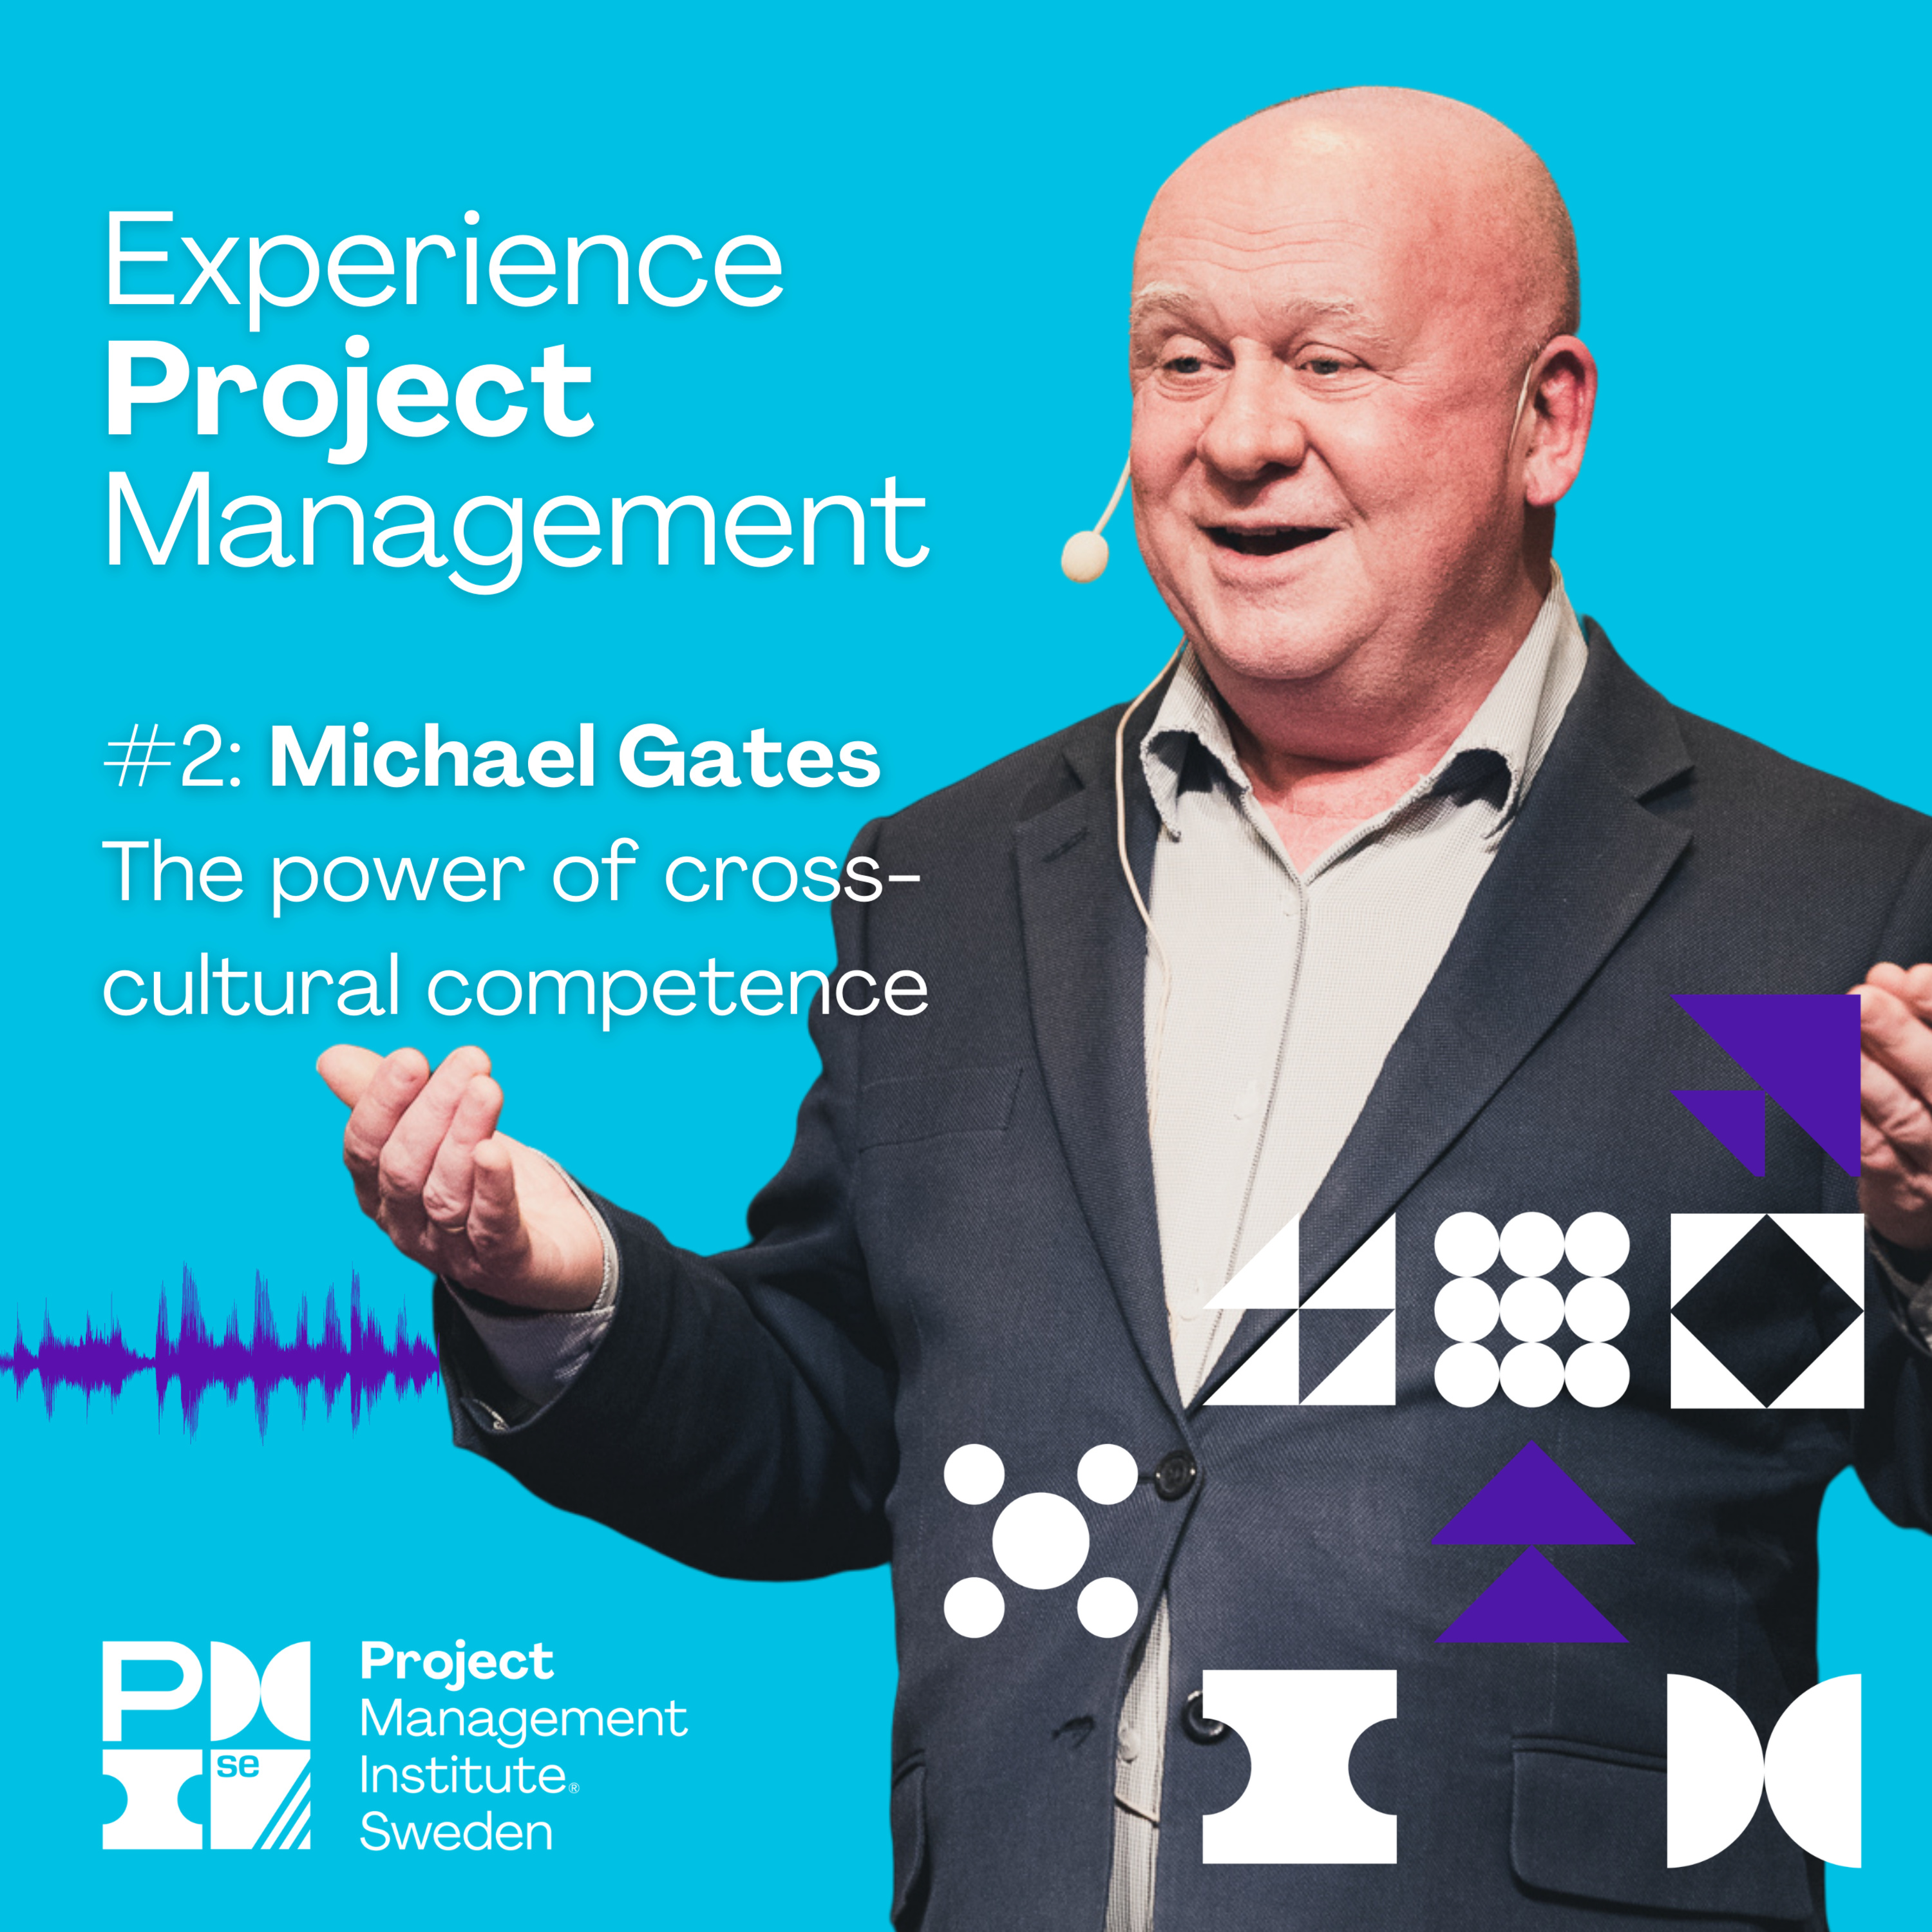 2. Michael Gates - The power of cross-cultural competence